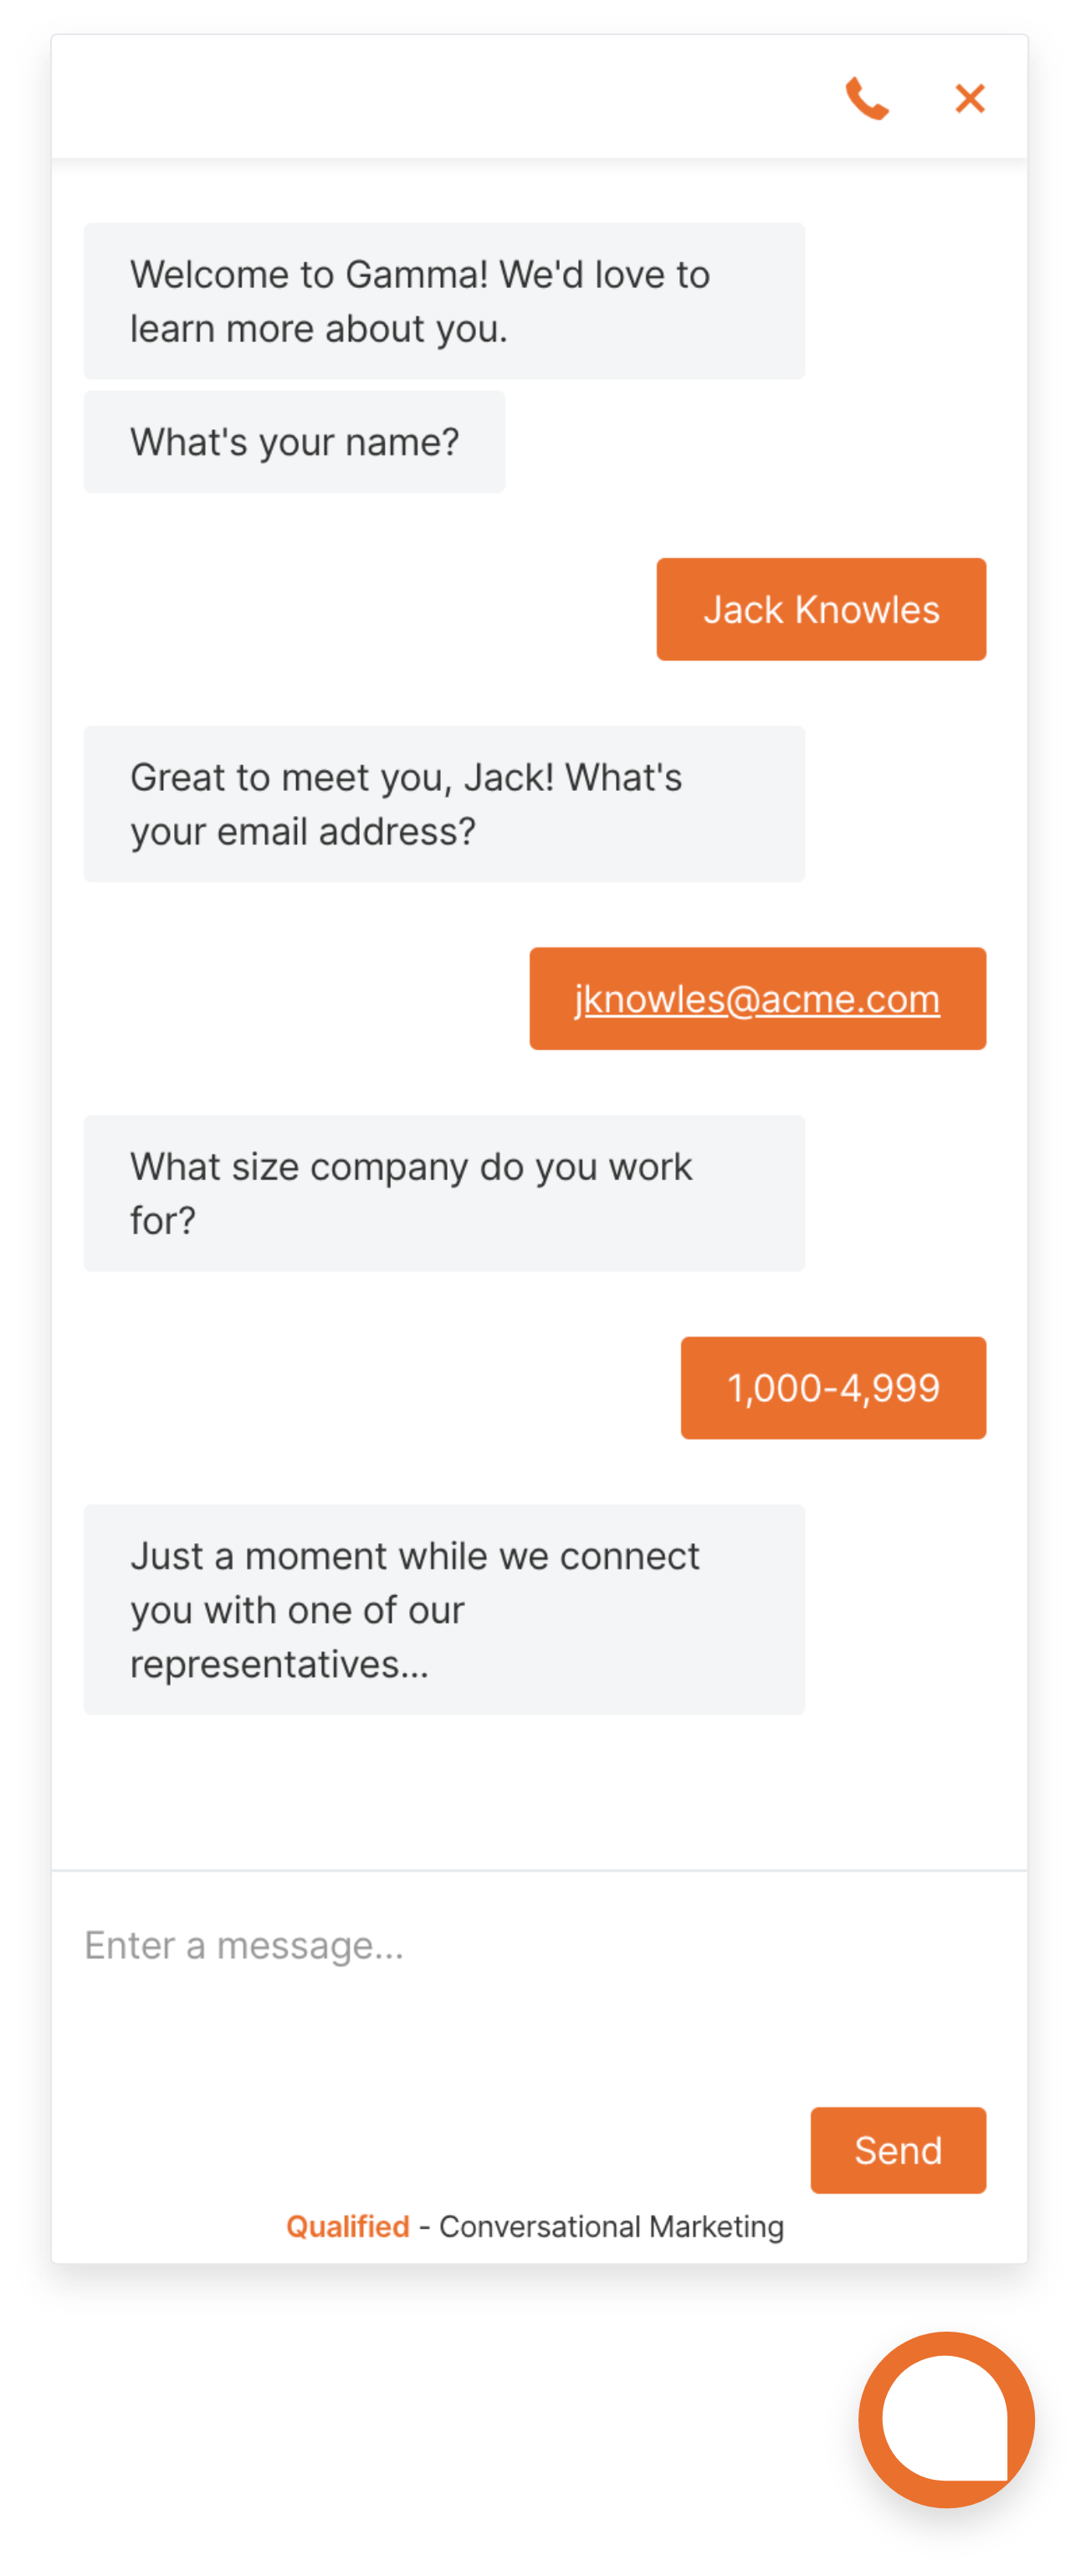 Gamma uses Chatbots to capture leads and qualify leads on their website